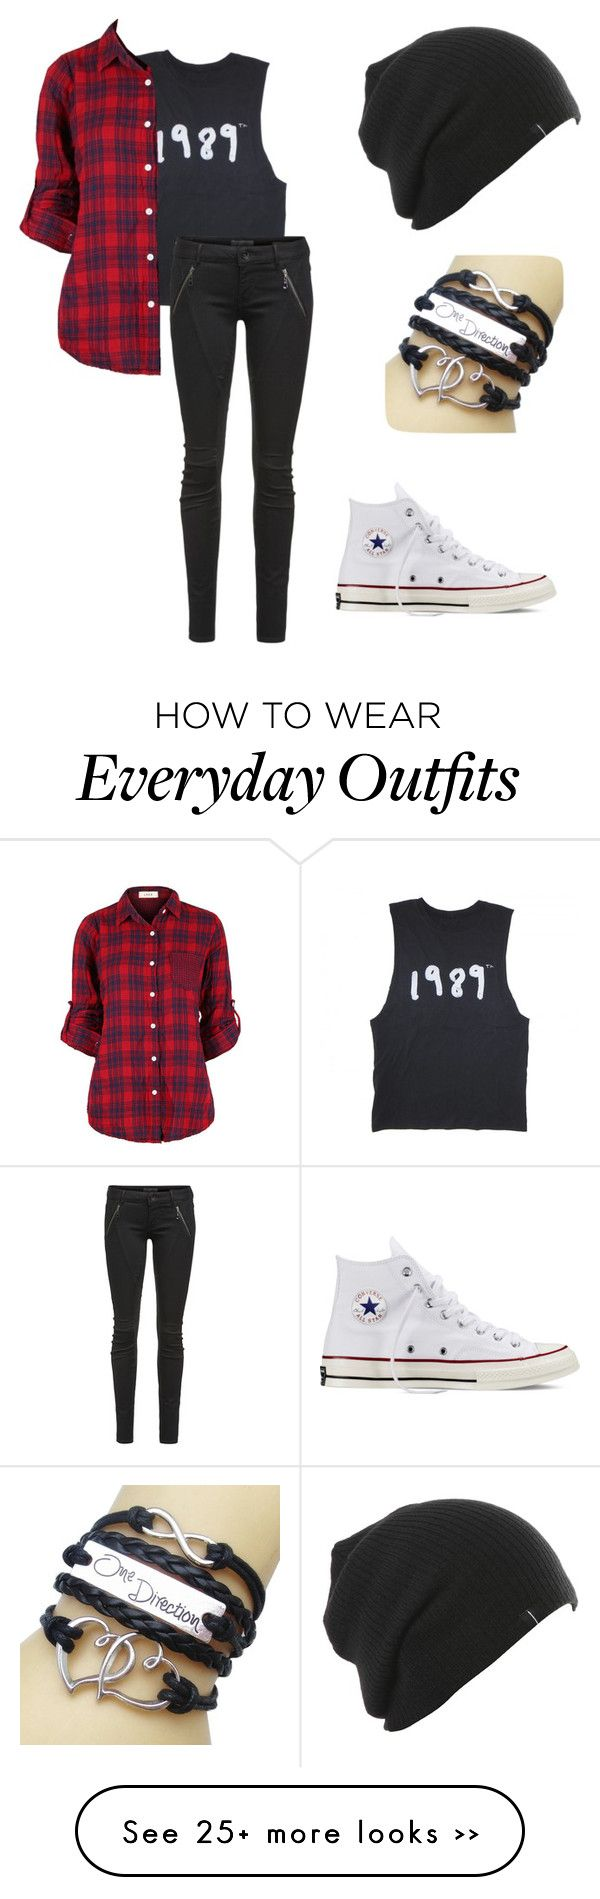 """School Outfit"" by libby-22 on Polyvore"